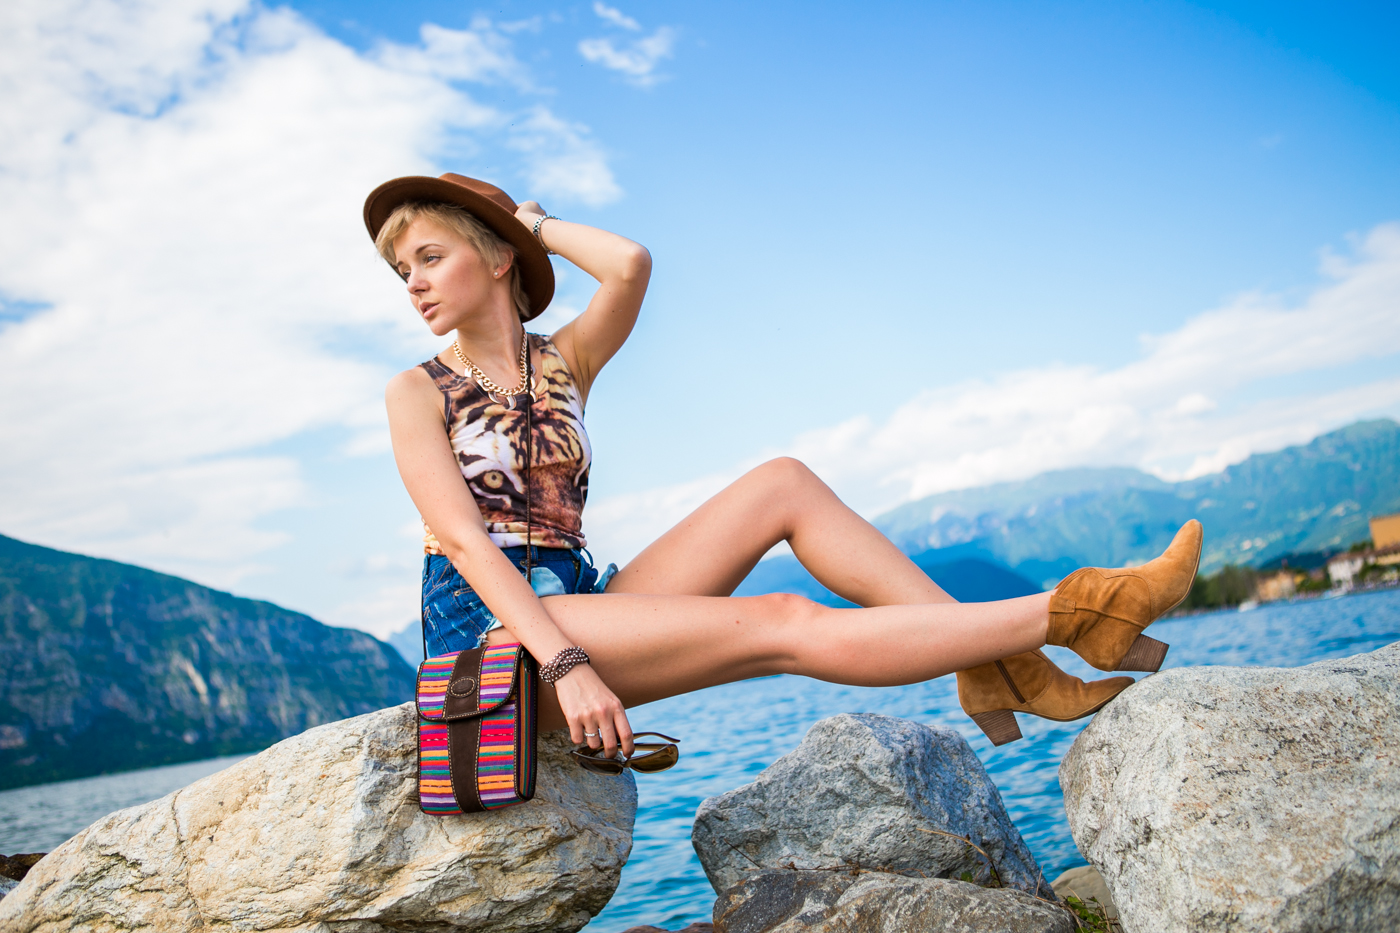 thecablook darya kamalova fashion blog street style denim shorts ash booties hm hat iseo lake piramidi di zona brescia-103